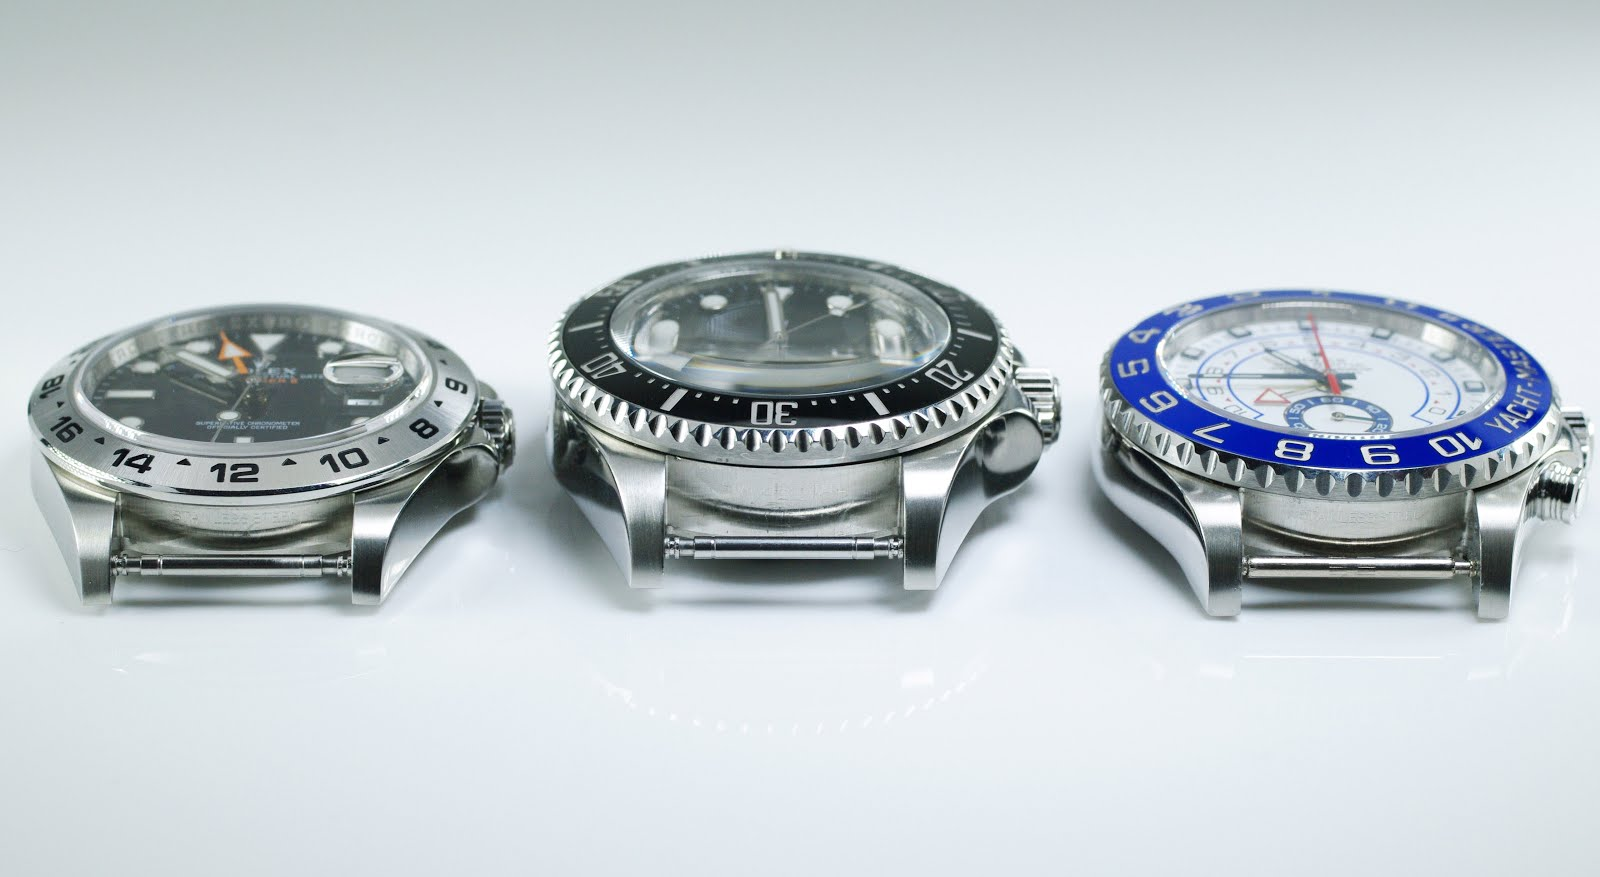 Rolex's Largest Professional Watch Cases Compared